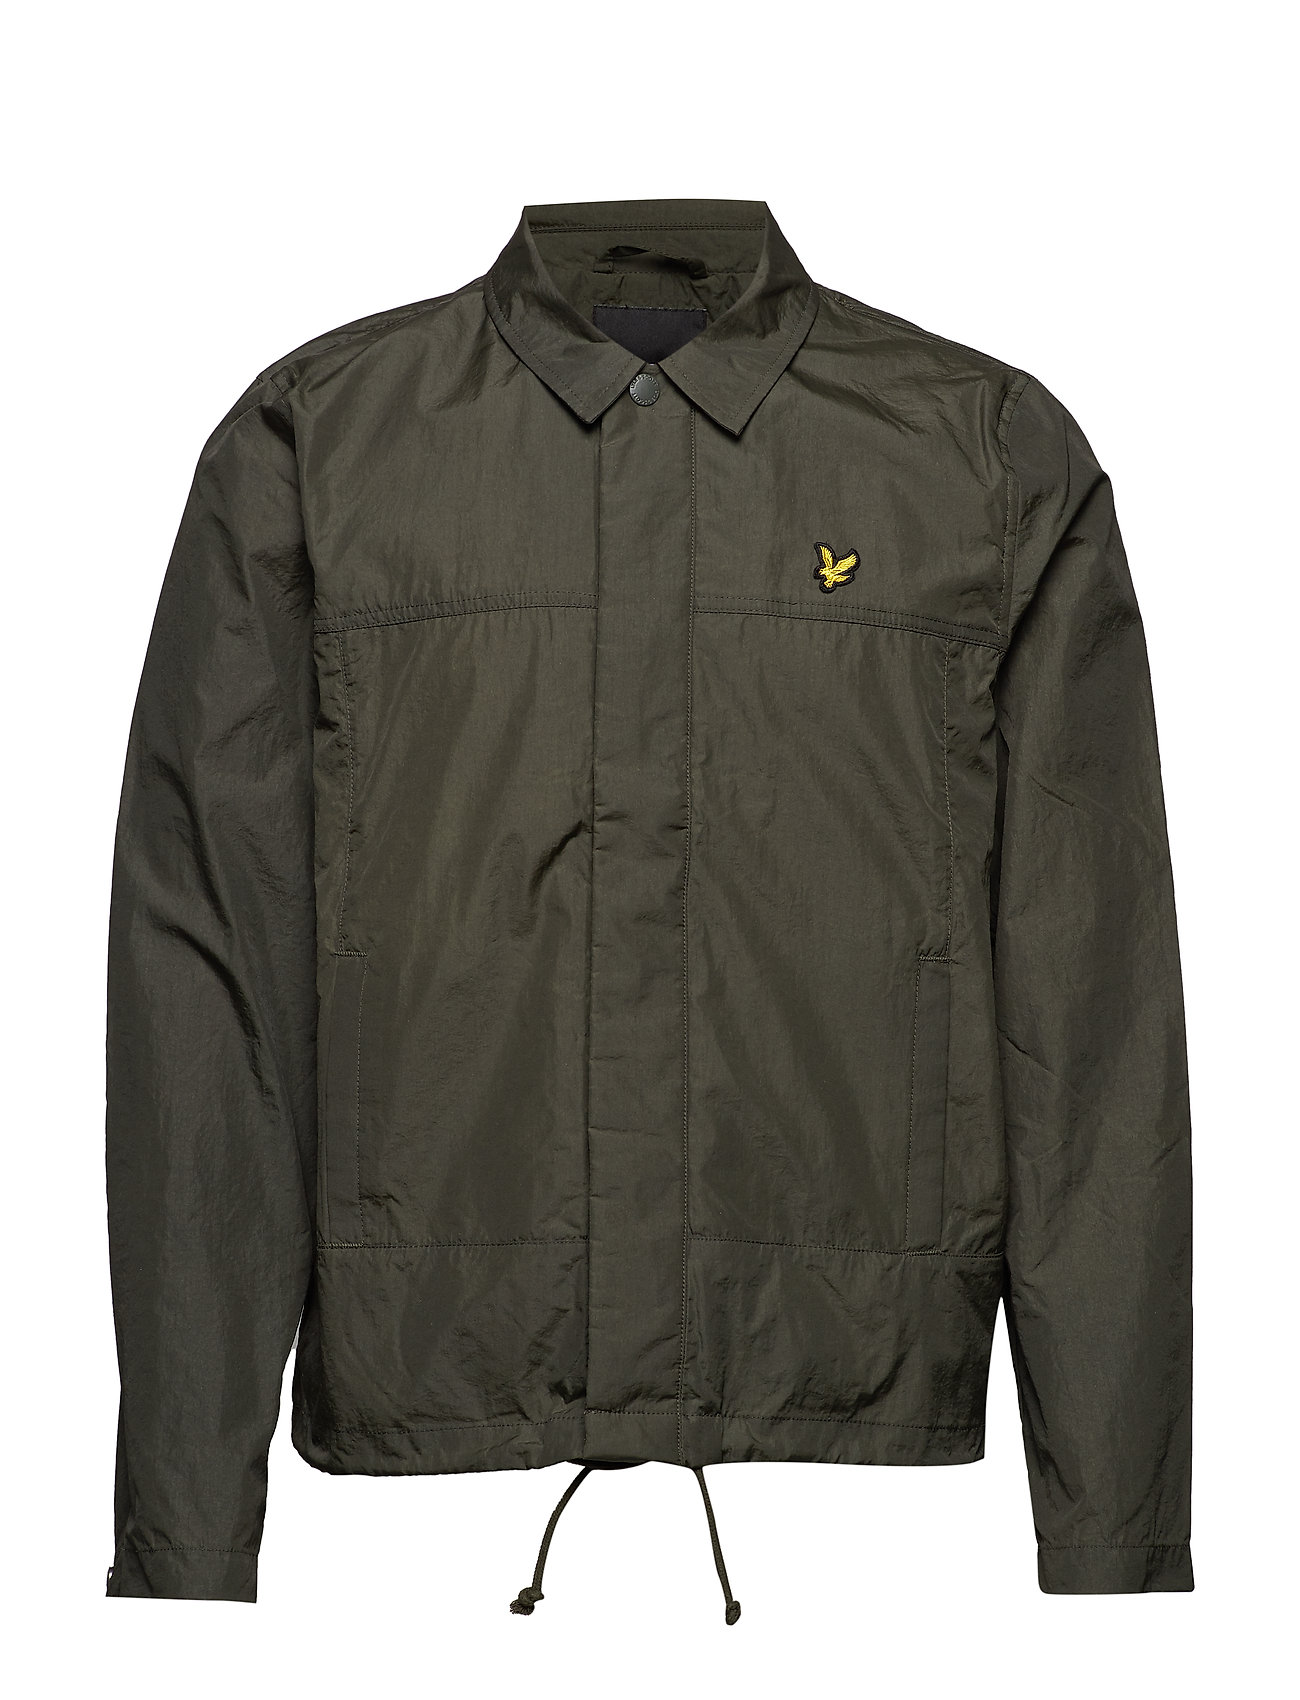 Lyle & Scott Coach Jacket - DARK SAGE